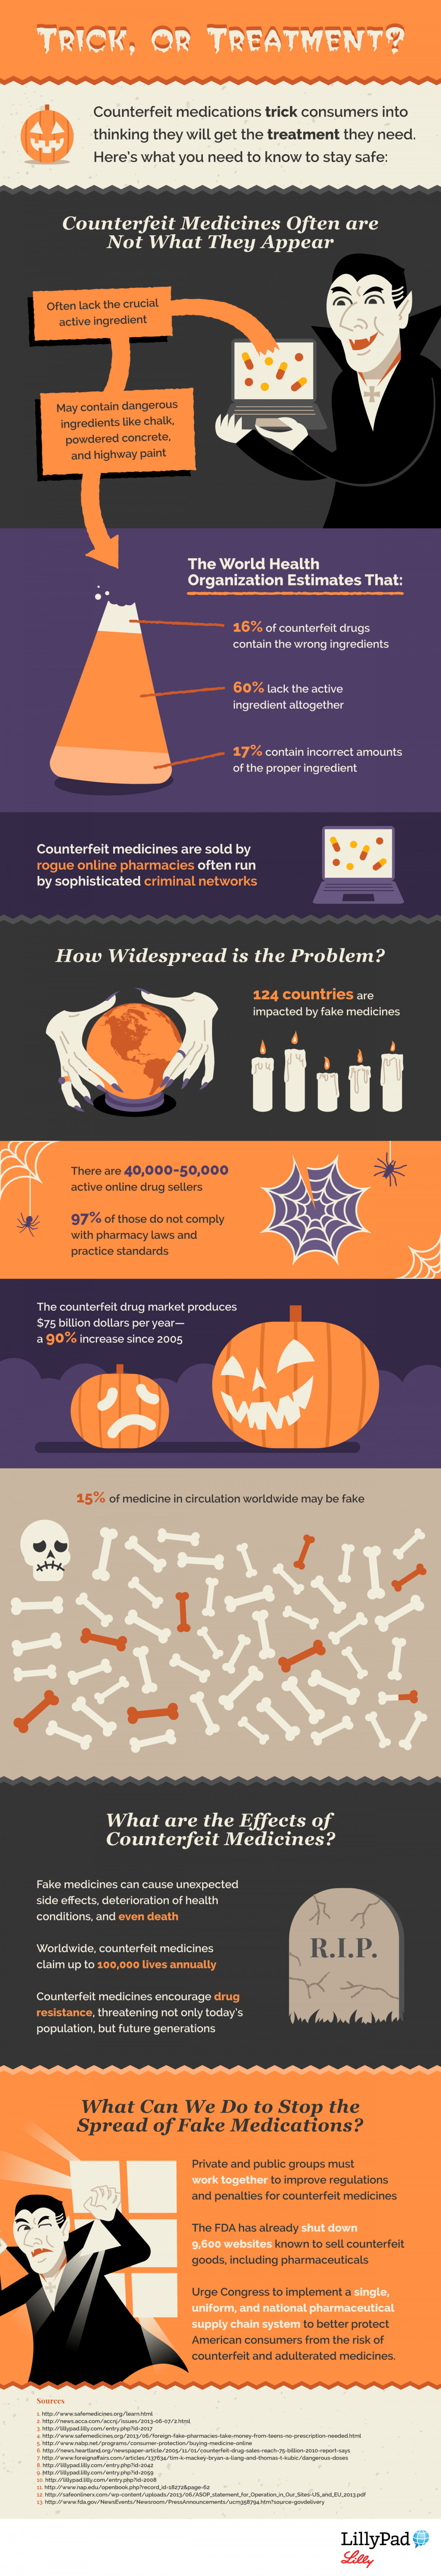 Trick, or Treatment? Infographic